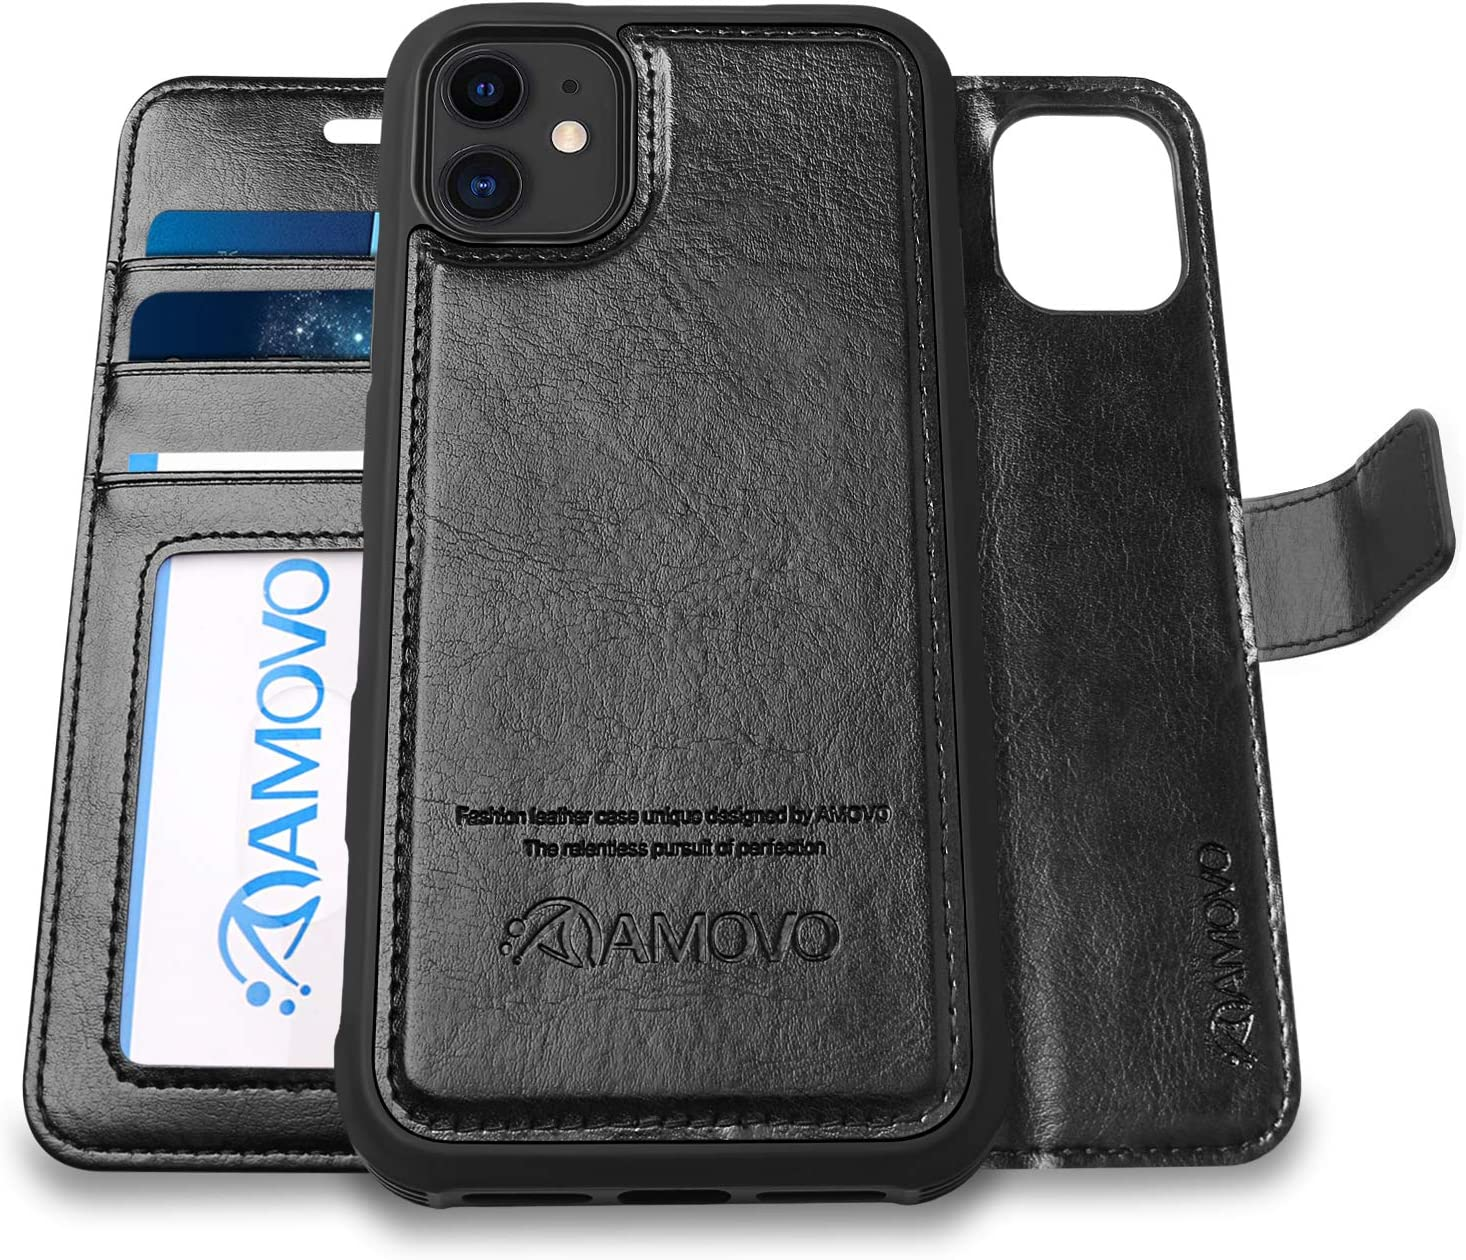 AMOVO Case for iPhone 11 (6.1'') [2 in 1] iPhone 11 Wallet Case Detachable [Vegan Leather] [Hand Strap] [Kickstand] iPhone 11 Flip Folio Case (iPhone 11 (6.1''), Black)